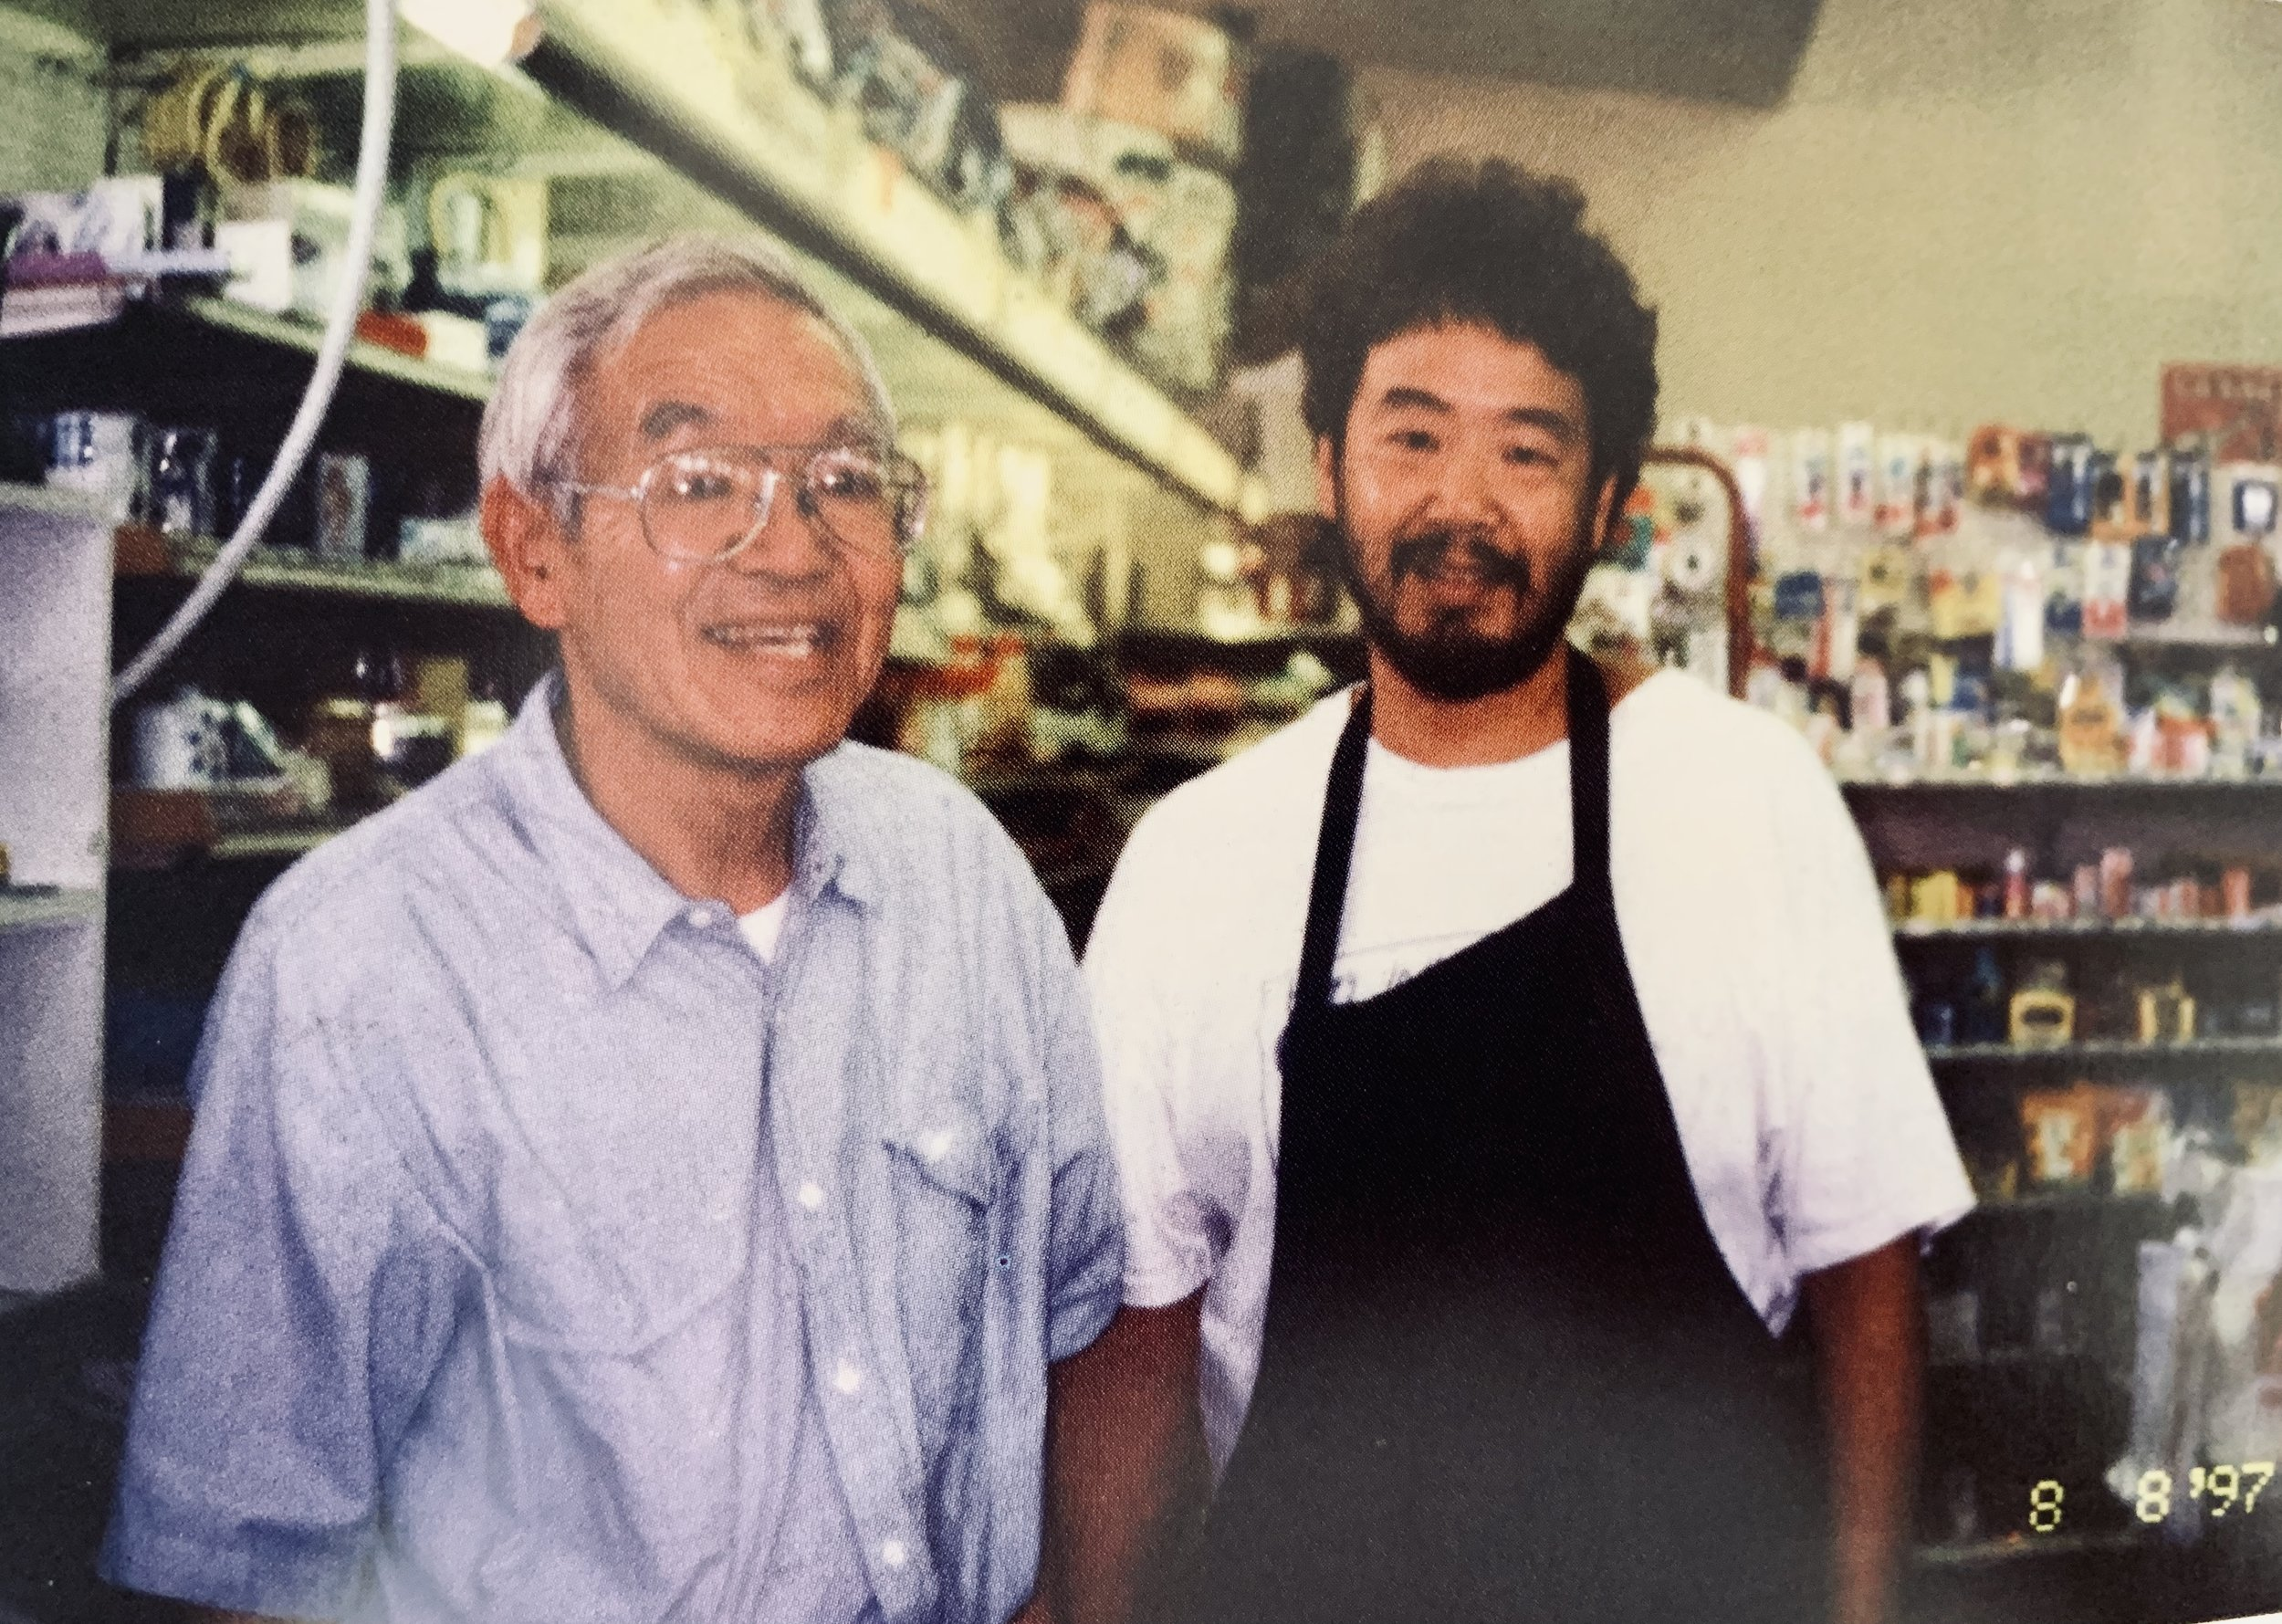 Earl and his son, Mark in the '90s. Photo courtesy of the Santo Family